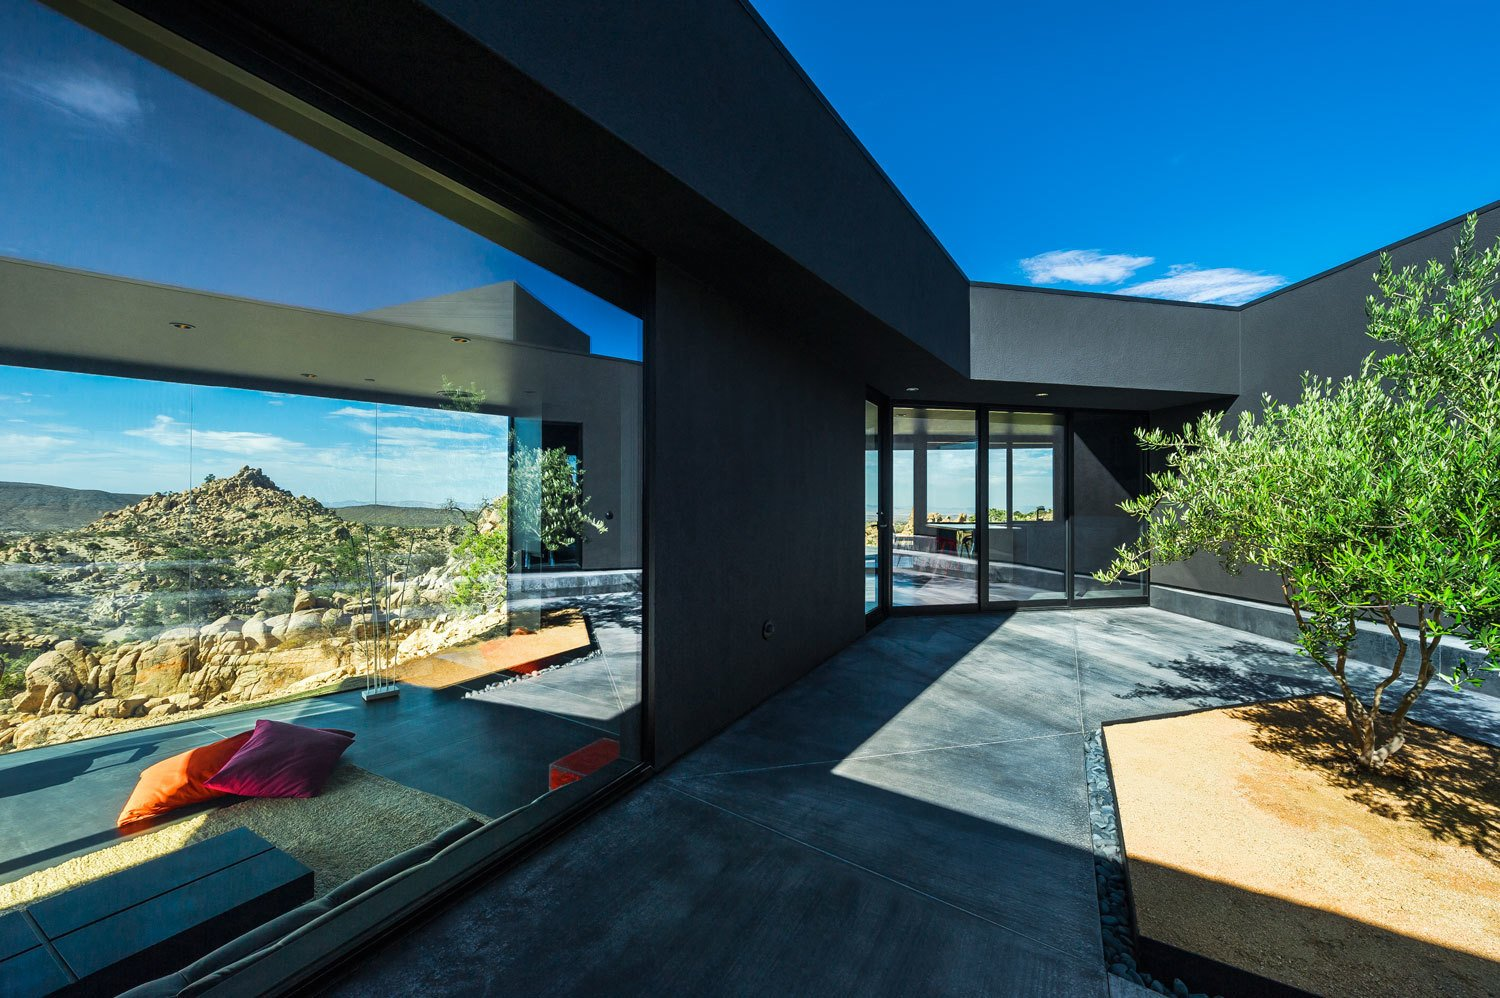 The architects designed the rooms as a linear sequence wrapping around a central courtyard. As one would have traversed the preexisting rock face, residents are constantly negotiating small elevation changes throughout the house. The plan also protects a central courtyard from the harsh Yucca Valley climate.  Photo 1 of 8 in A Sculptural Desert Escape Inspired by a Shadow